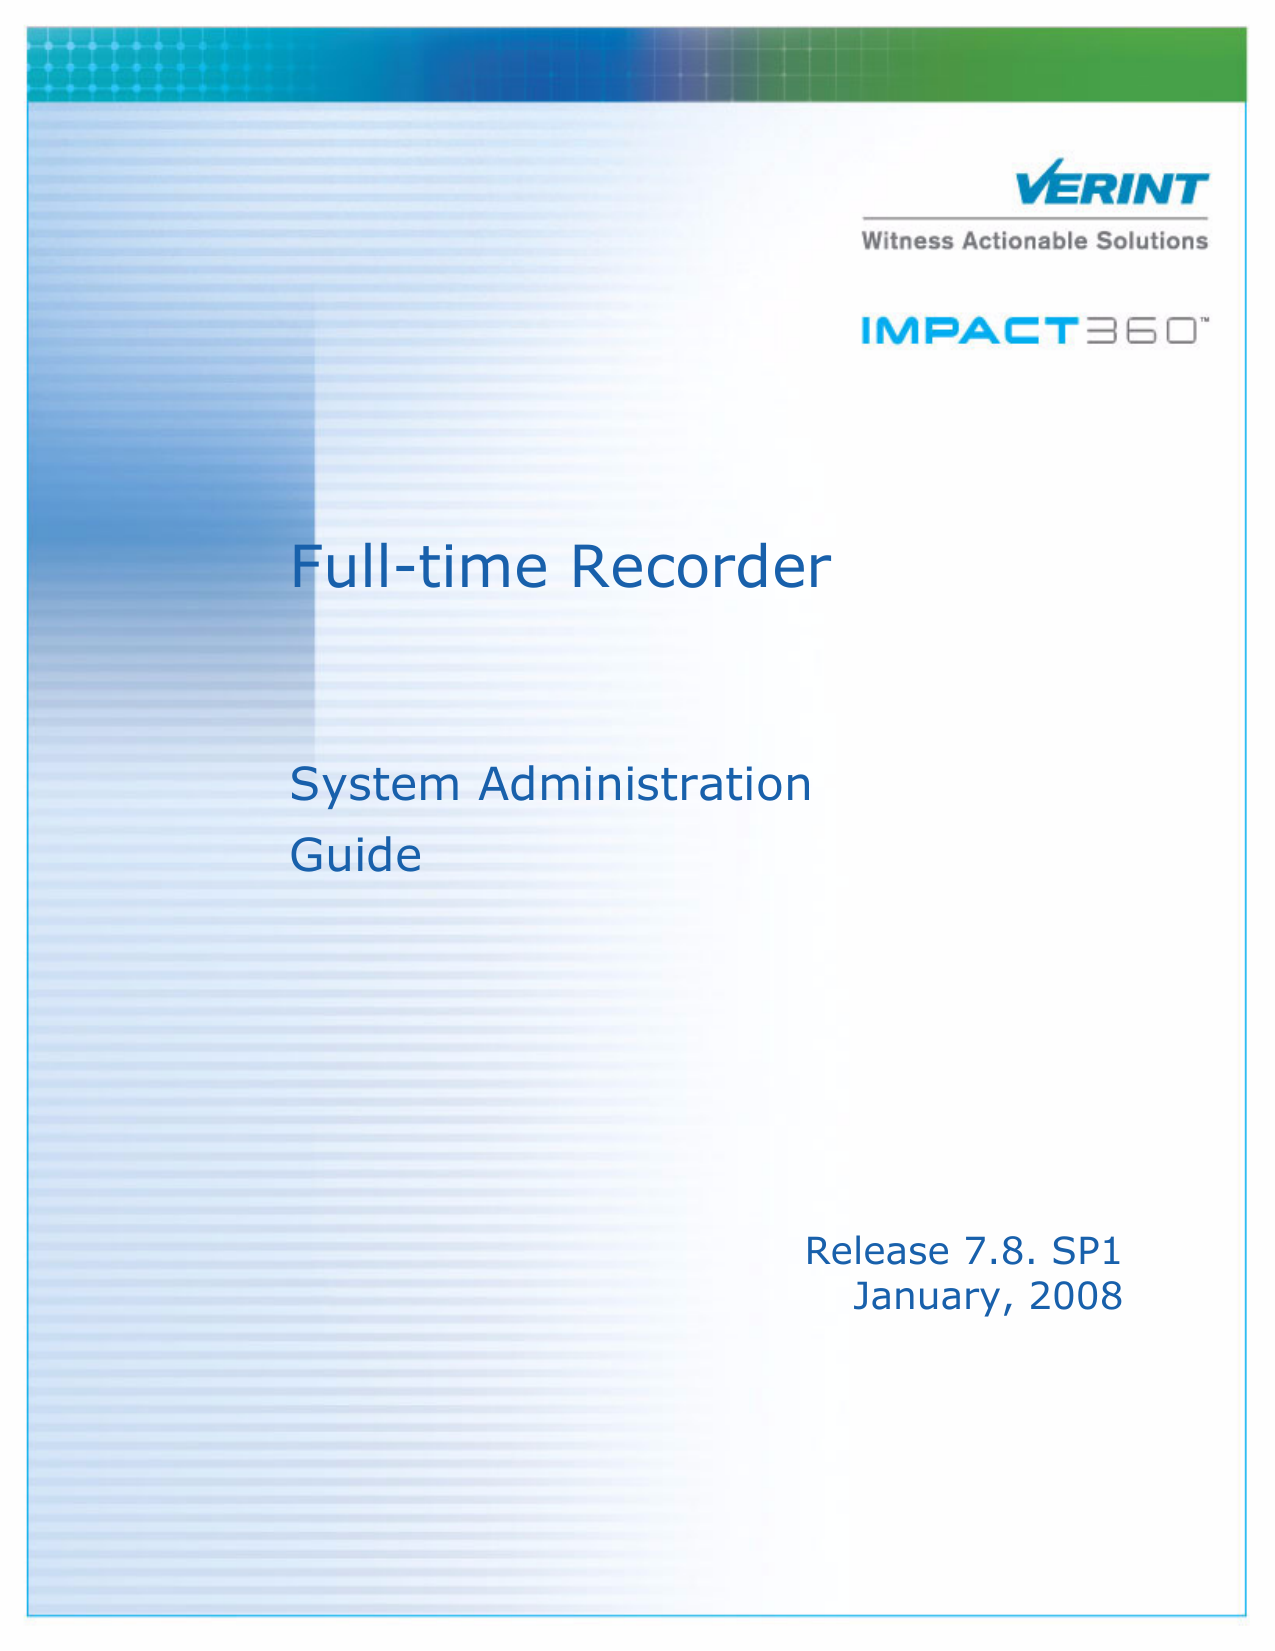 impact 360 recorder system administration guide rh studylib net Verint Impact 360 Log In Verint Impact 360 Log In